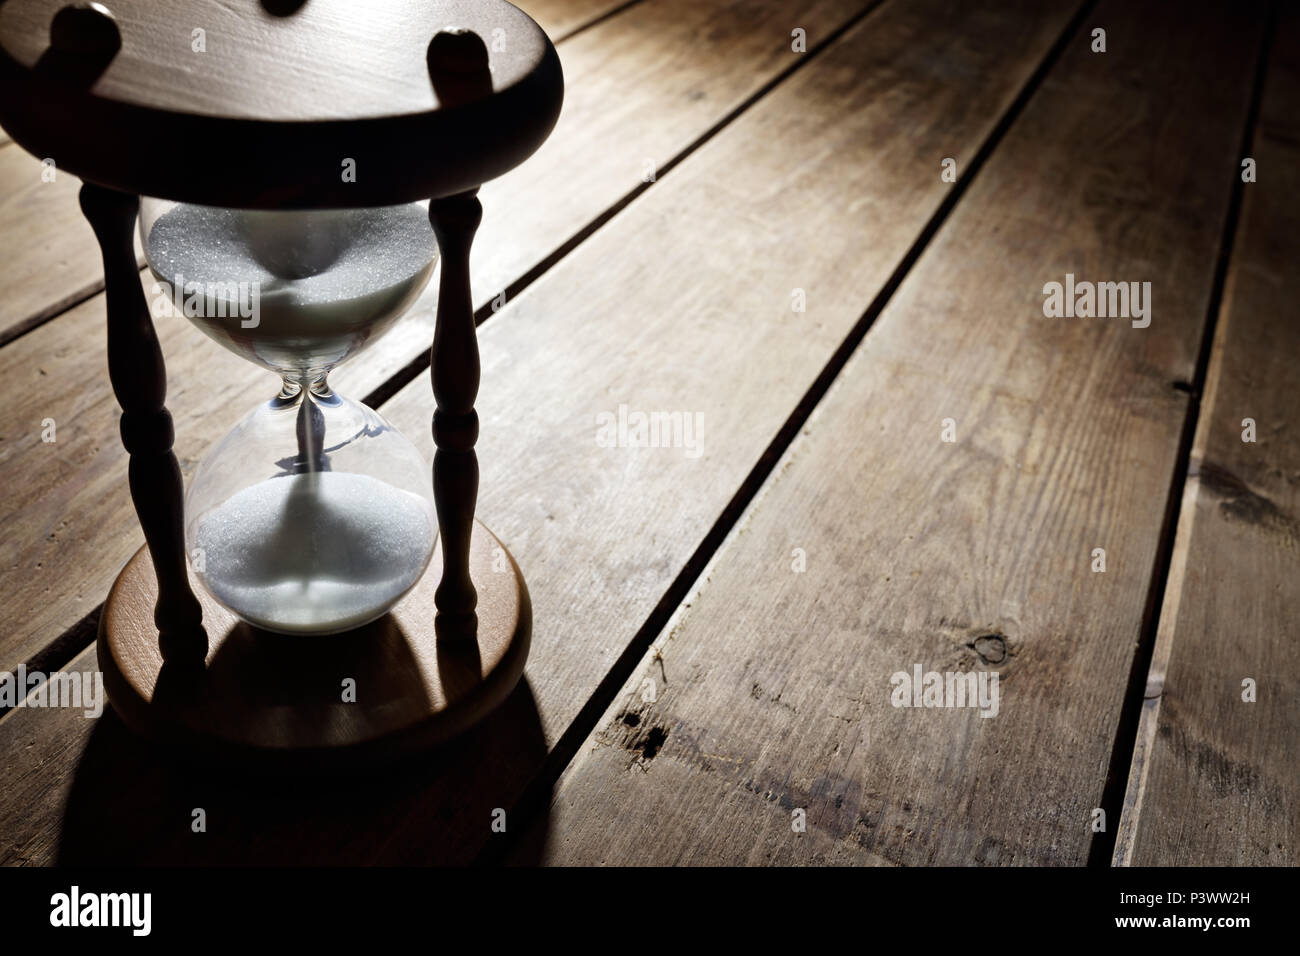 Hourglass time passing concept for business deadline, urgency and running out of time - Stock Image